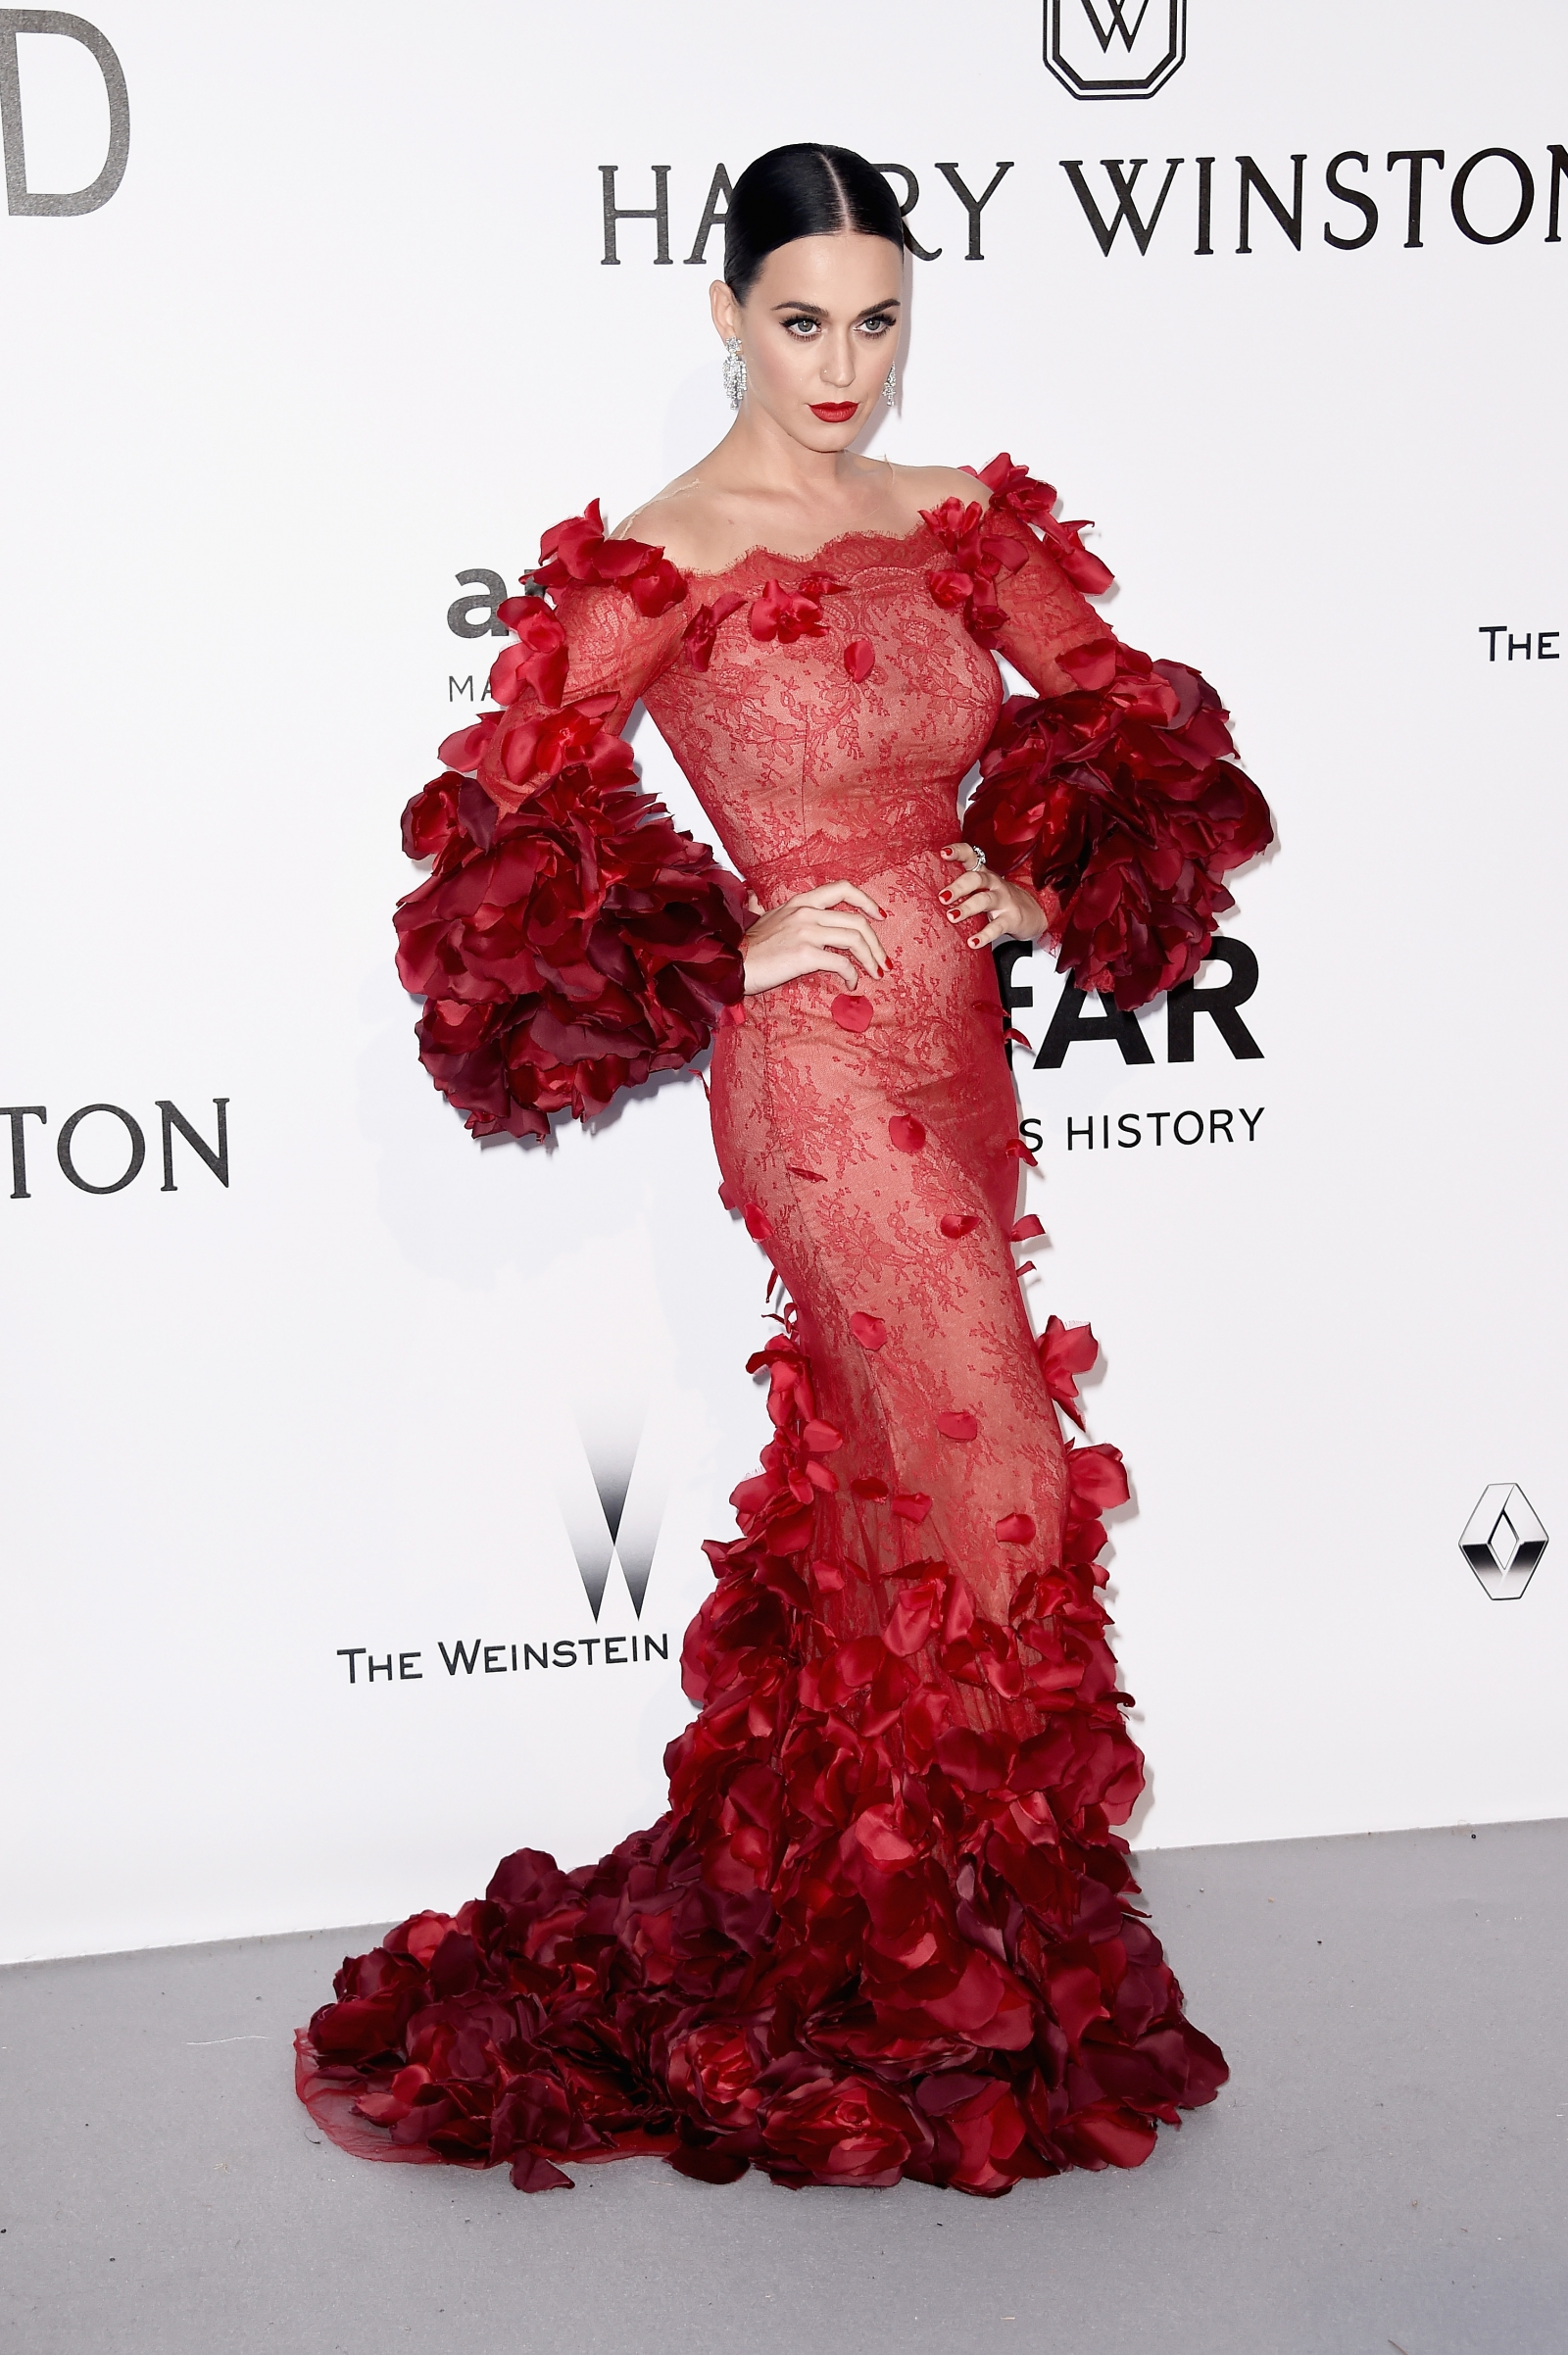 amfar-red-carpet.jpg